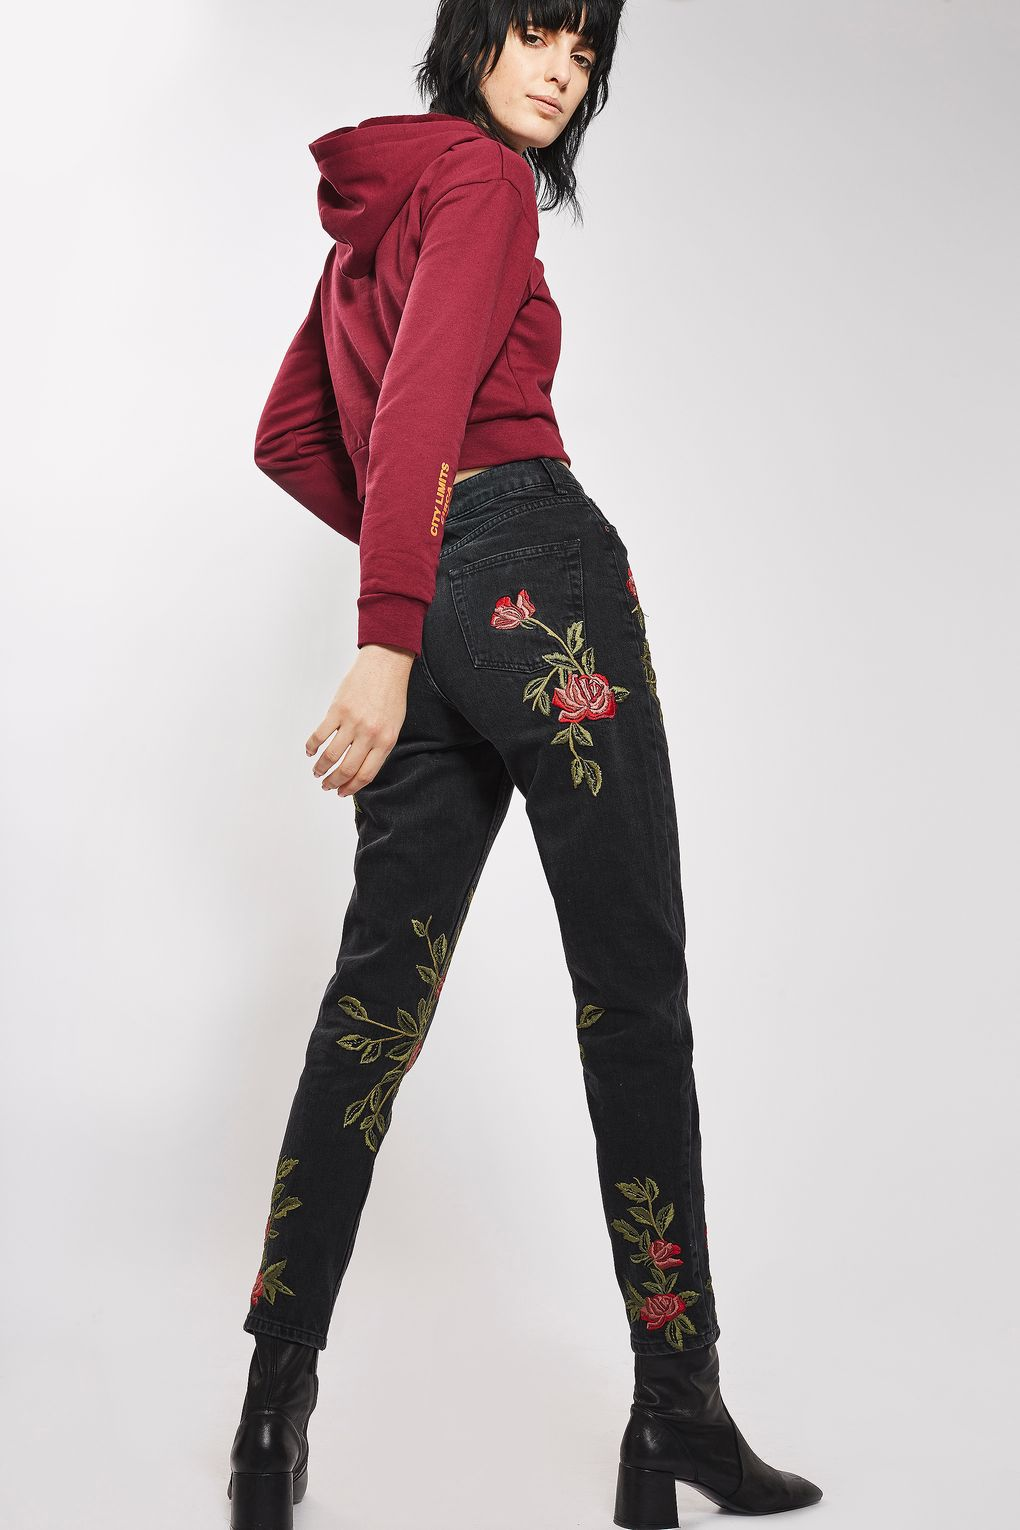 black jeans embroidered with roses